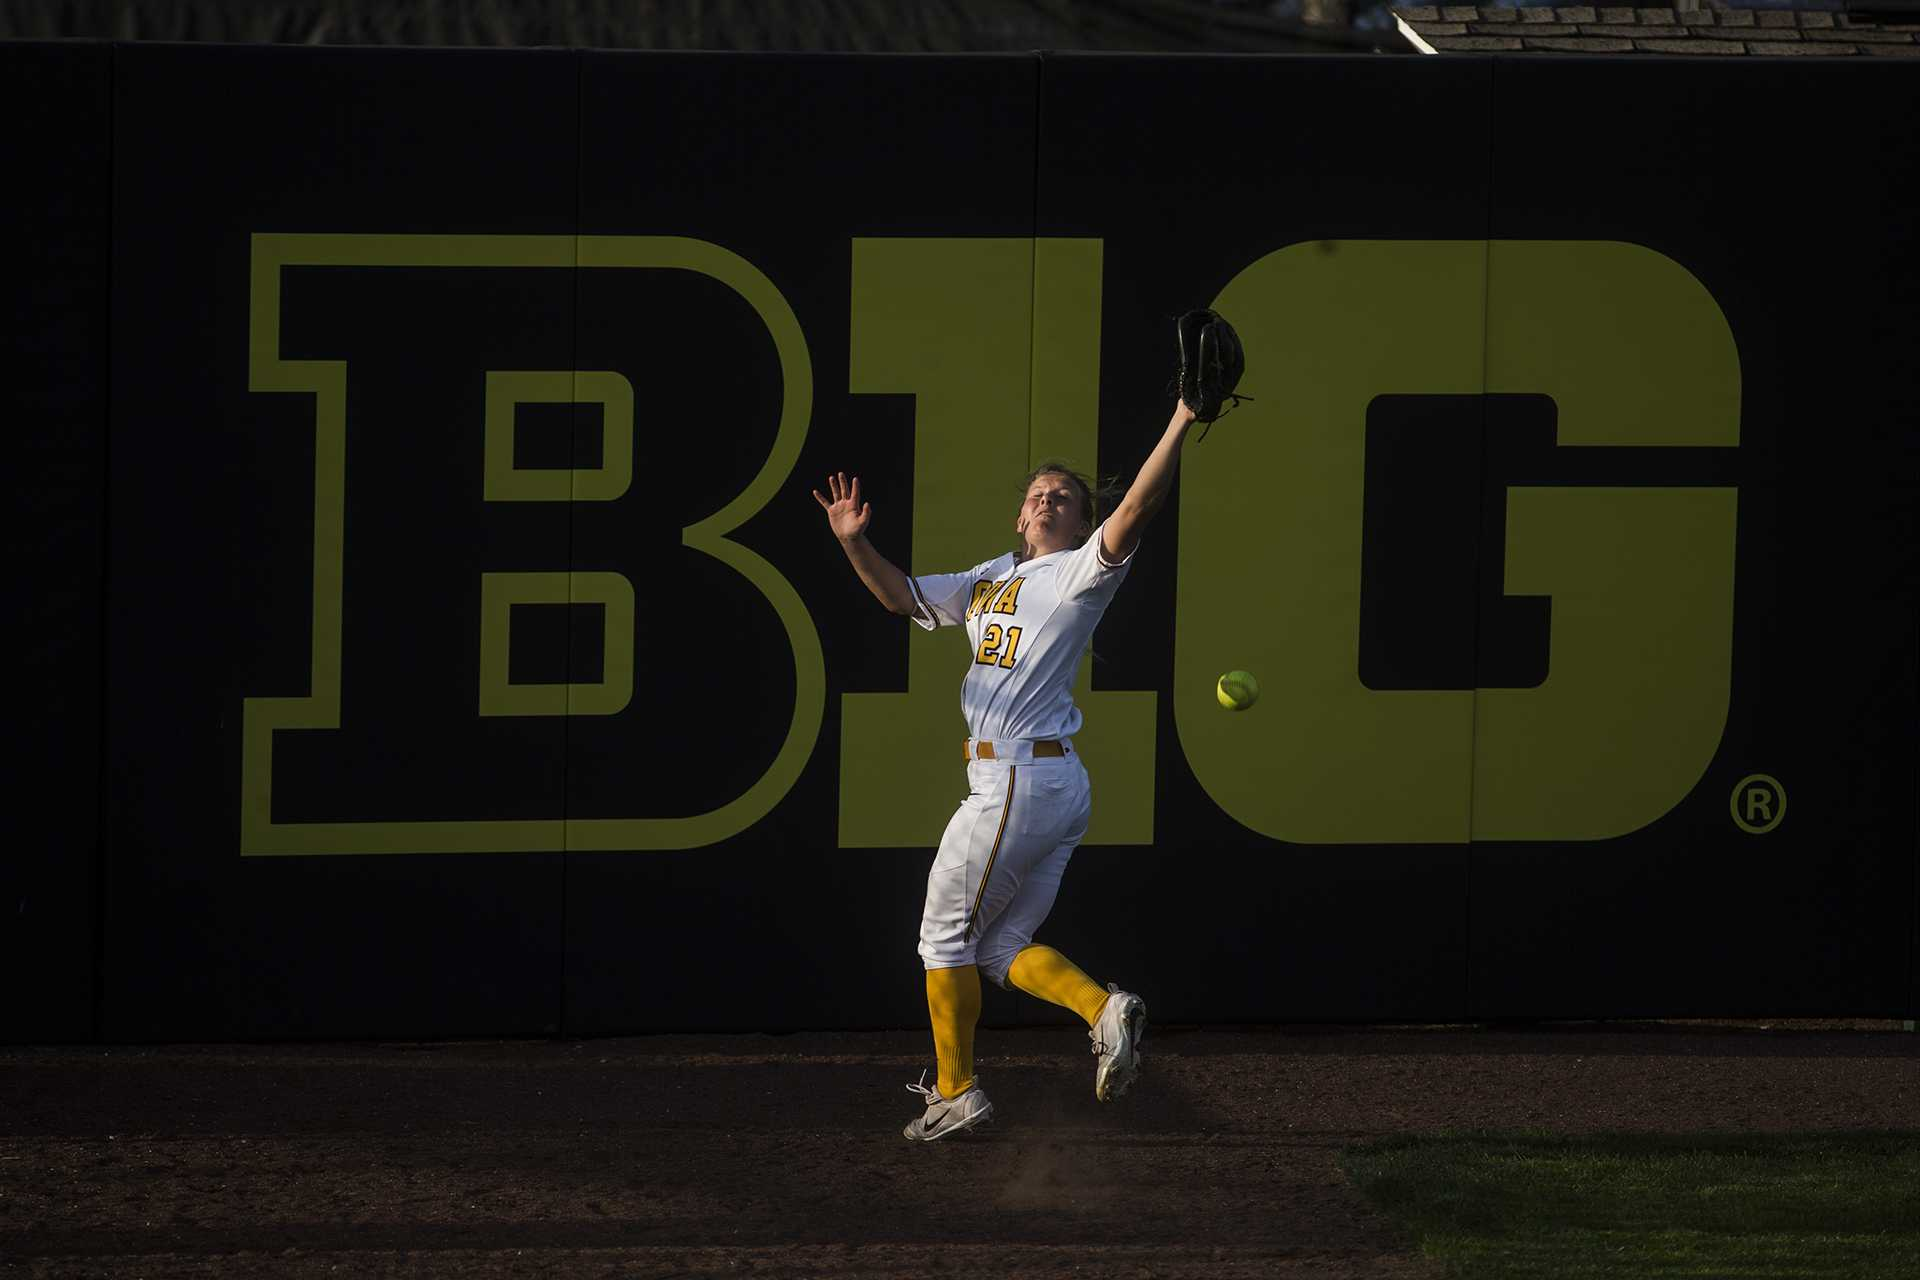 Iowa outfielder Havyn Monteer misses a fly ball in right field during the NCAA women's softball game between Iowa and Purdue at Bob Pearl Softball Field on Friday, May 4, 2018. The Hawkeyes lost to the Boilermakers 1-3. (Ben Allan Smith/The Daily Iowan)